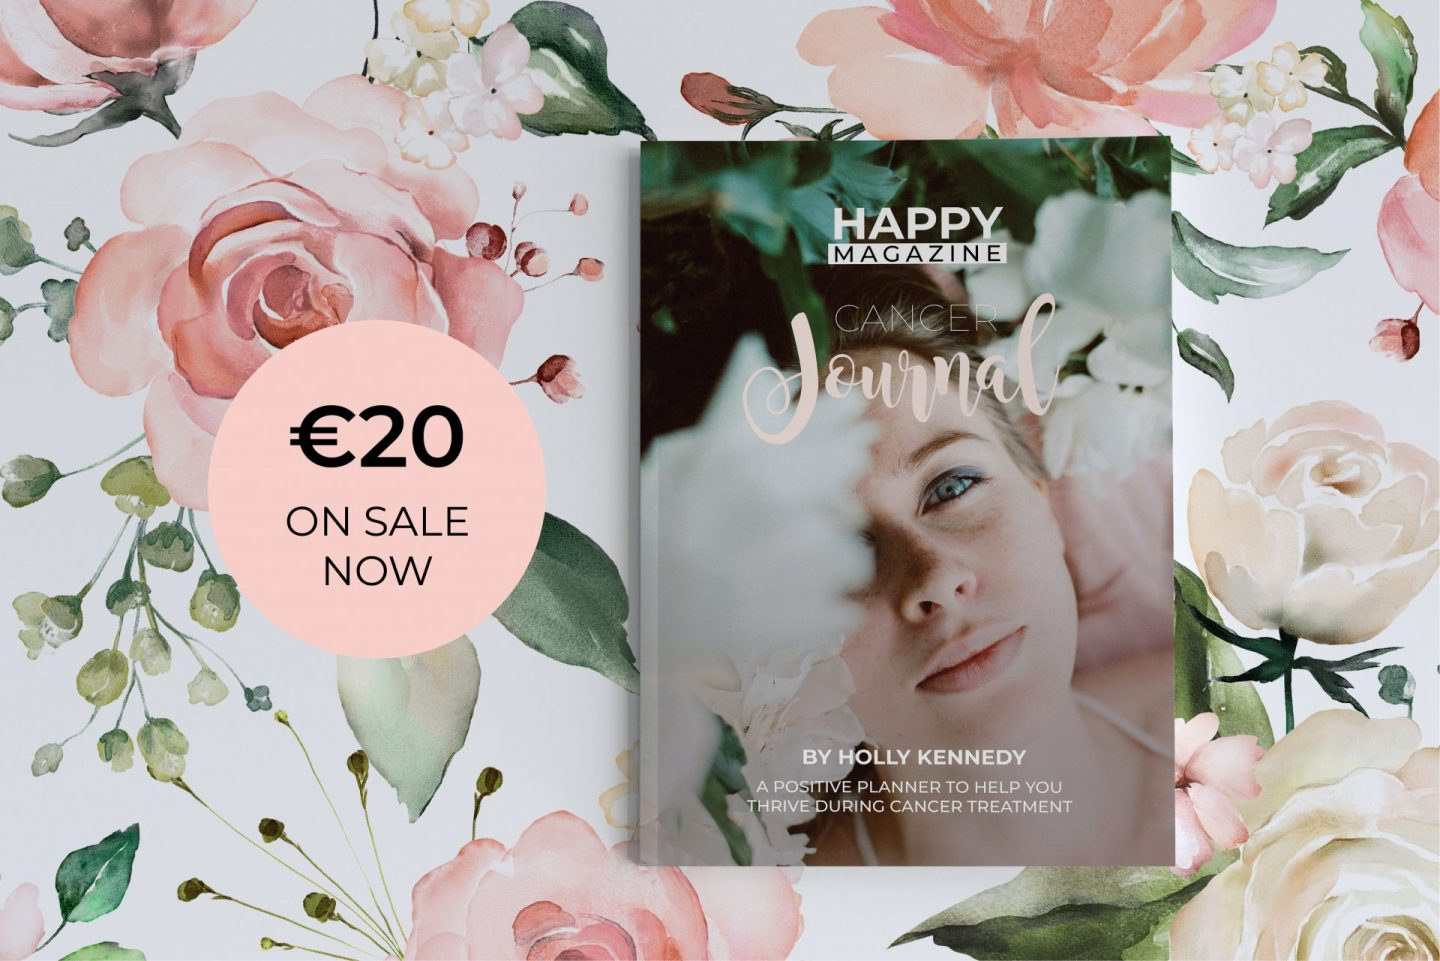 On sale now: Happy Magazine Cancer Journal